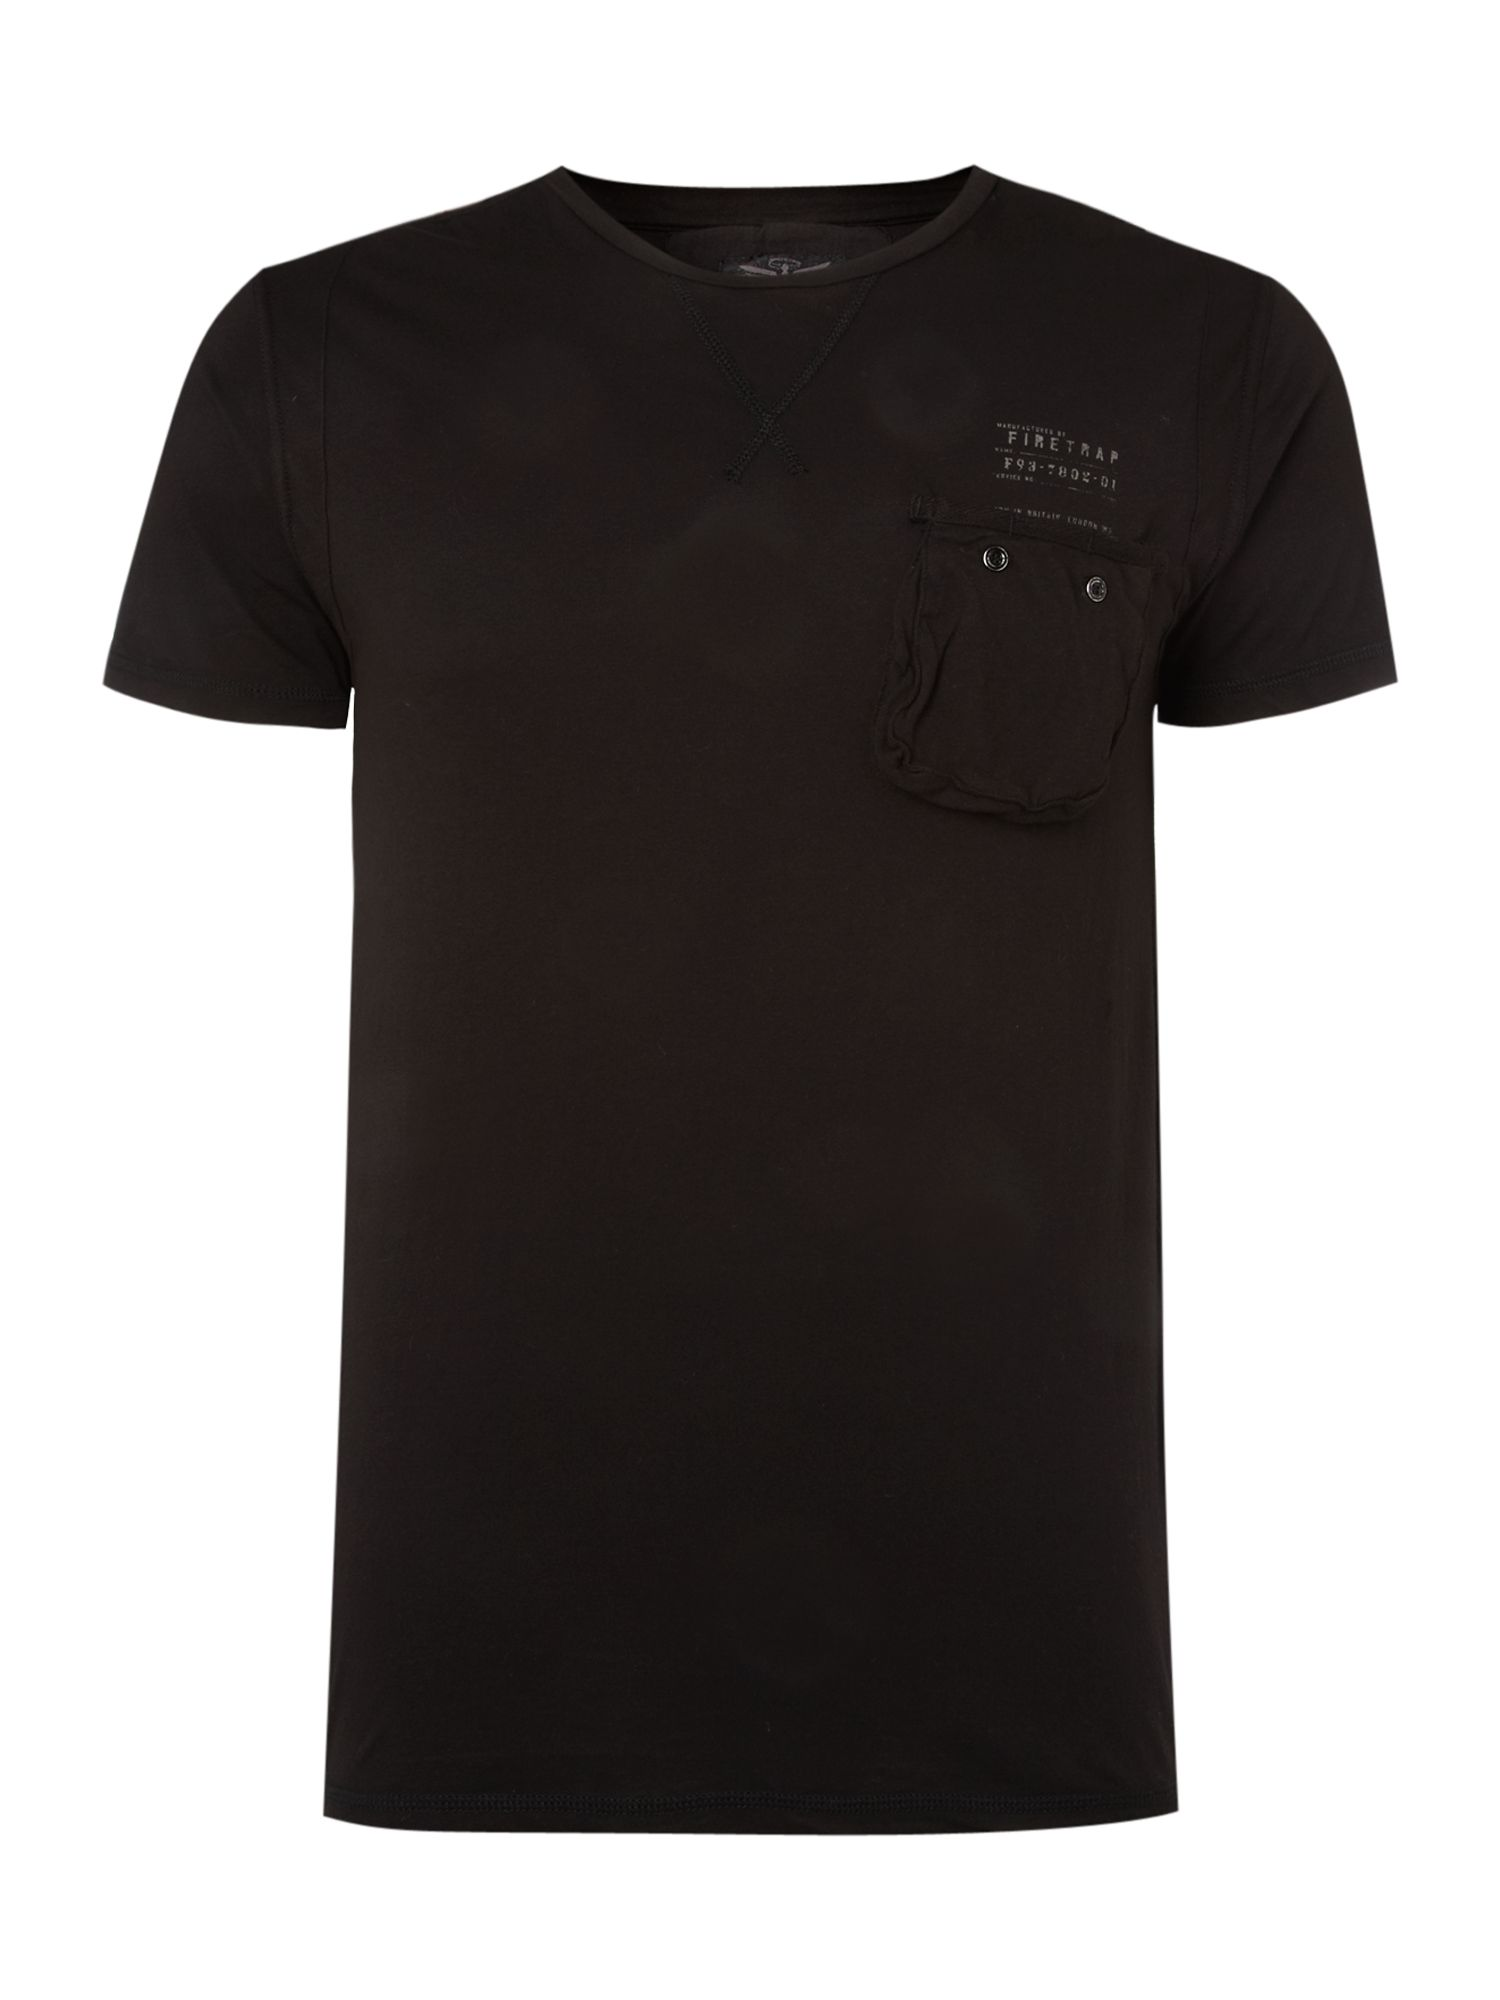 Firetrap One pocket T-shirt - White product image